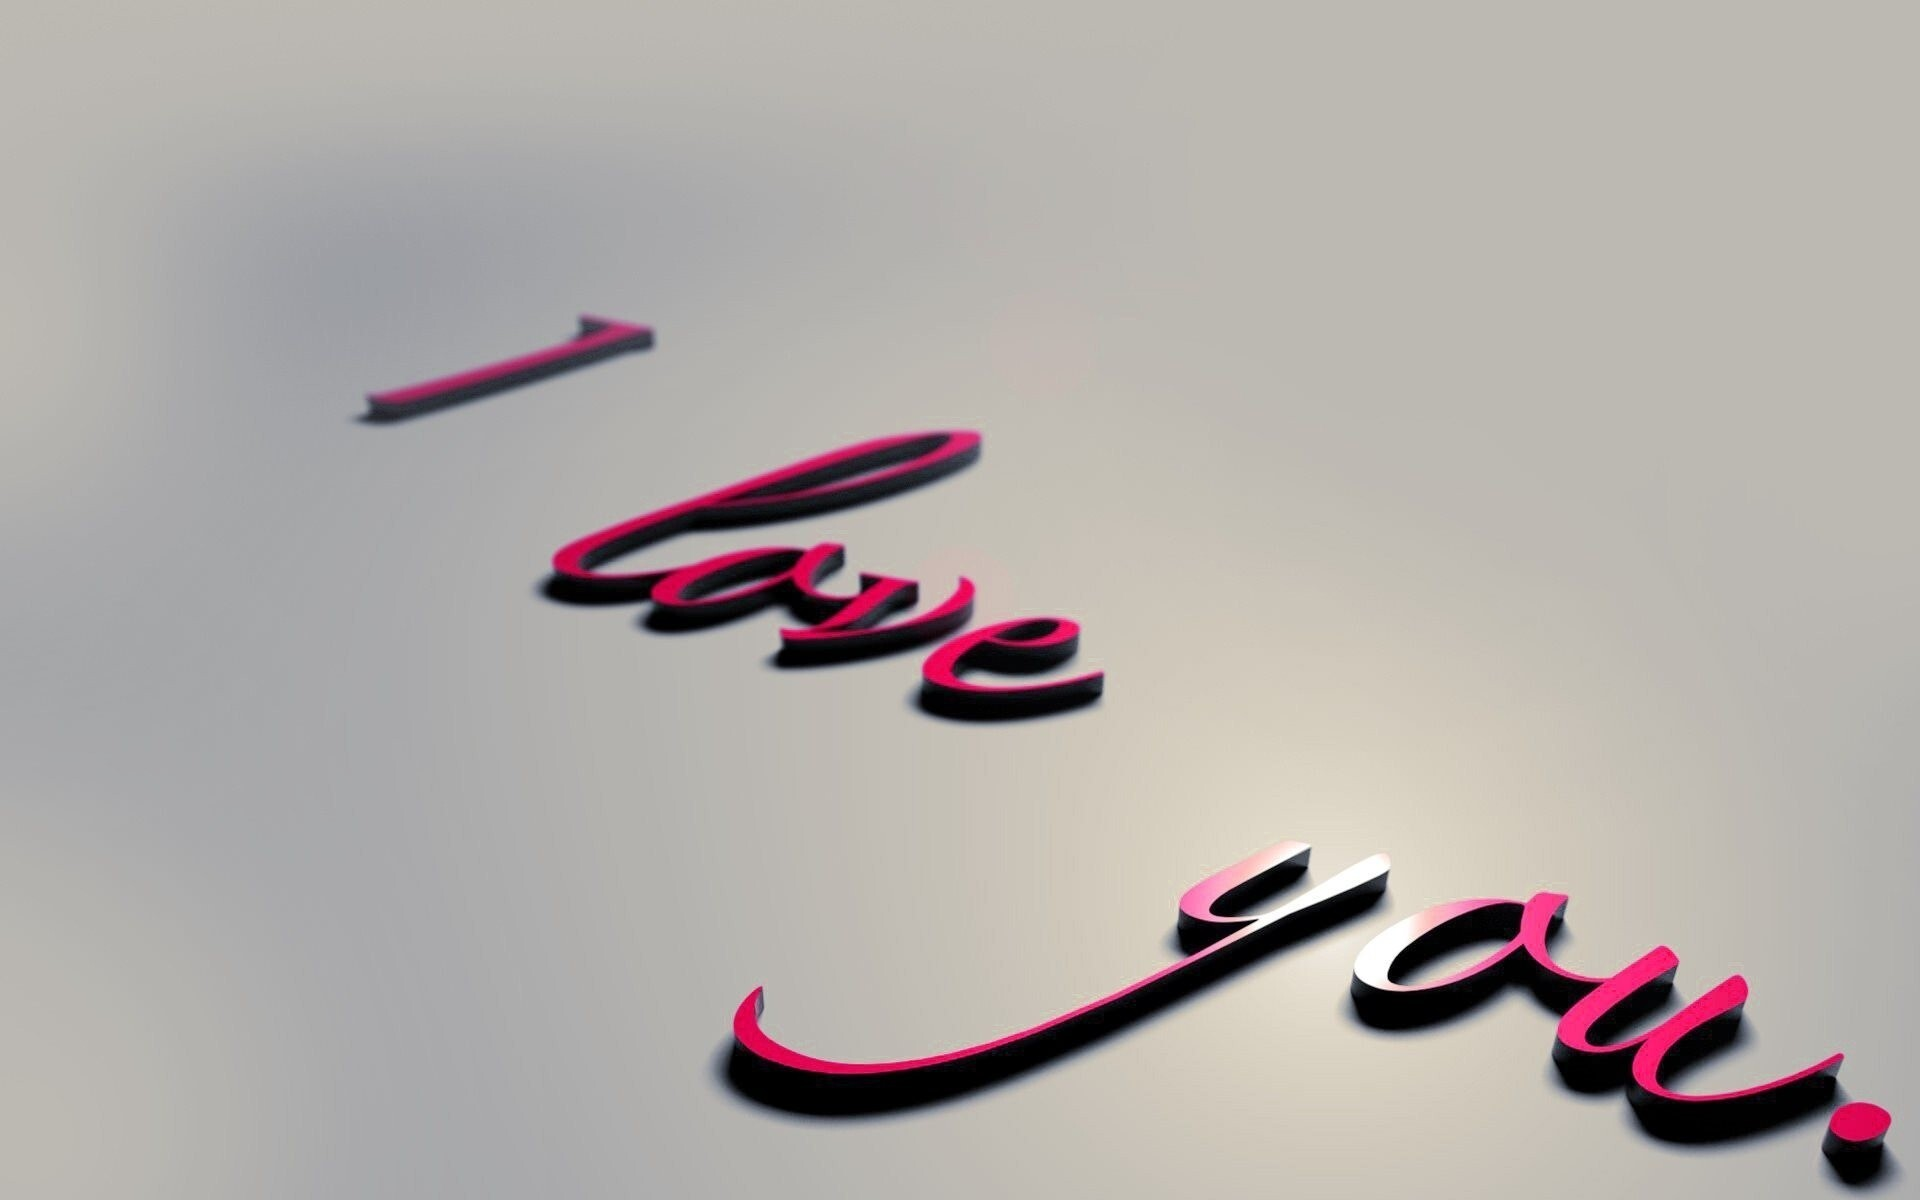 I Love You Wallpaper For Pc : I Love You Desktop HD Background Wallpapers HD Wallpapers